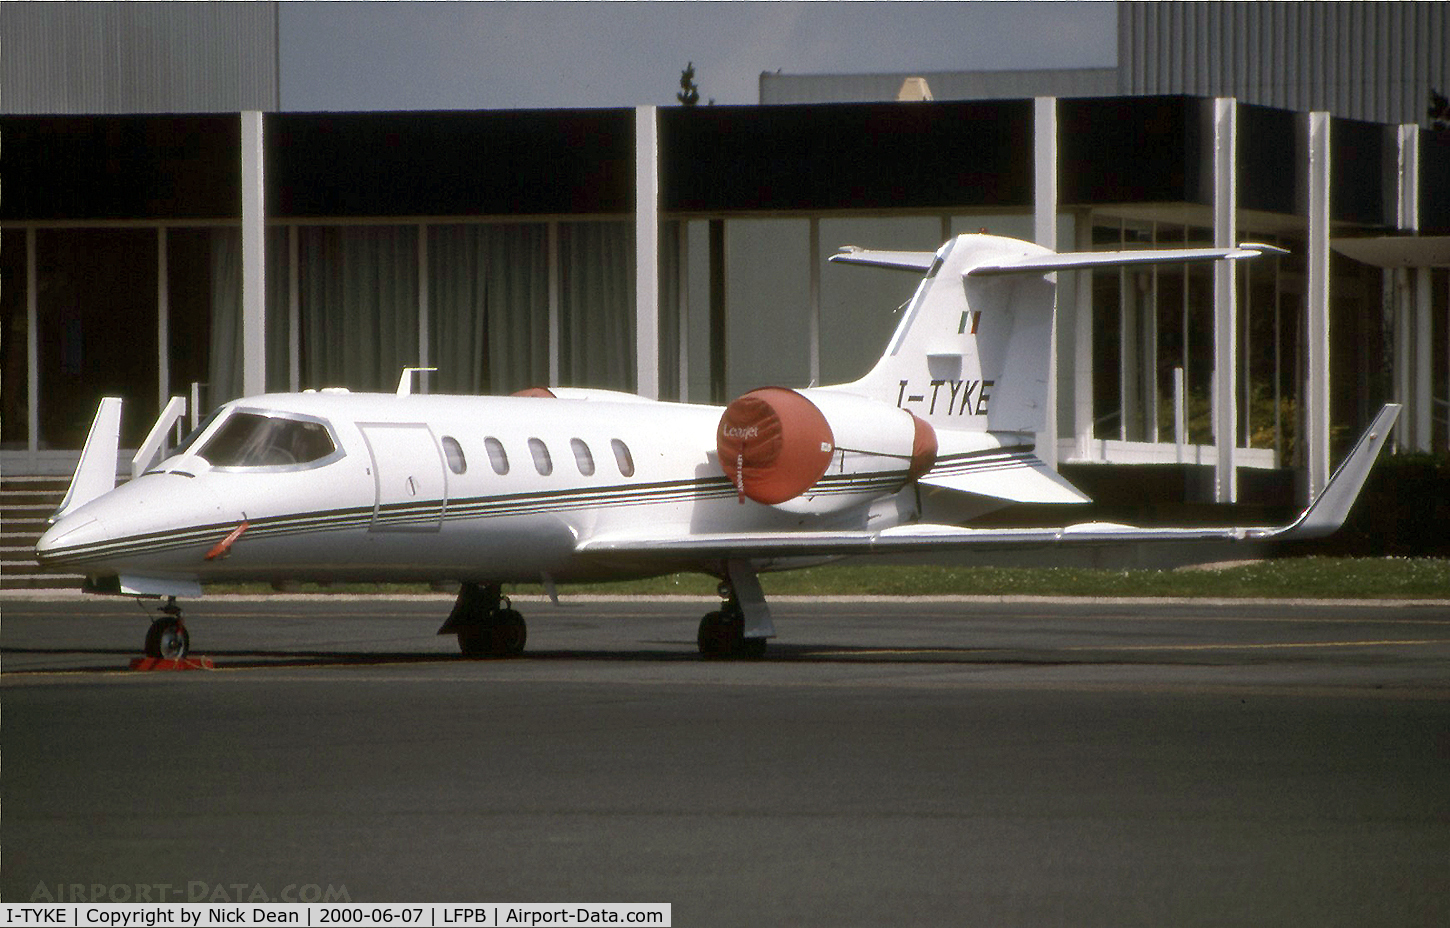 I-TYKE, 1996 Learjet 31A C/N 31-120, LFPB Paris Le Bourget (currently registered C-GHJU and based at CYVR)